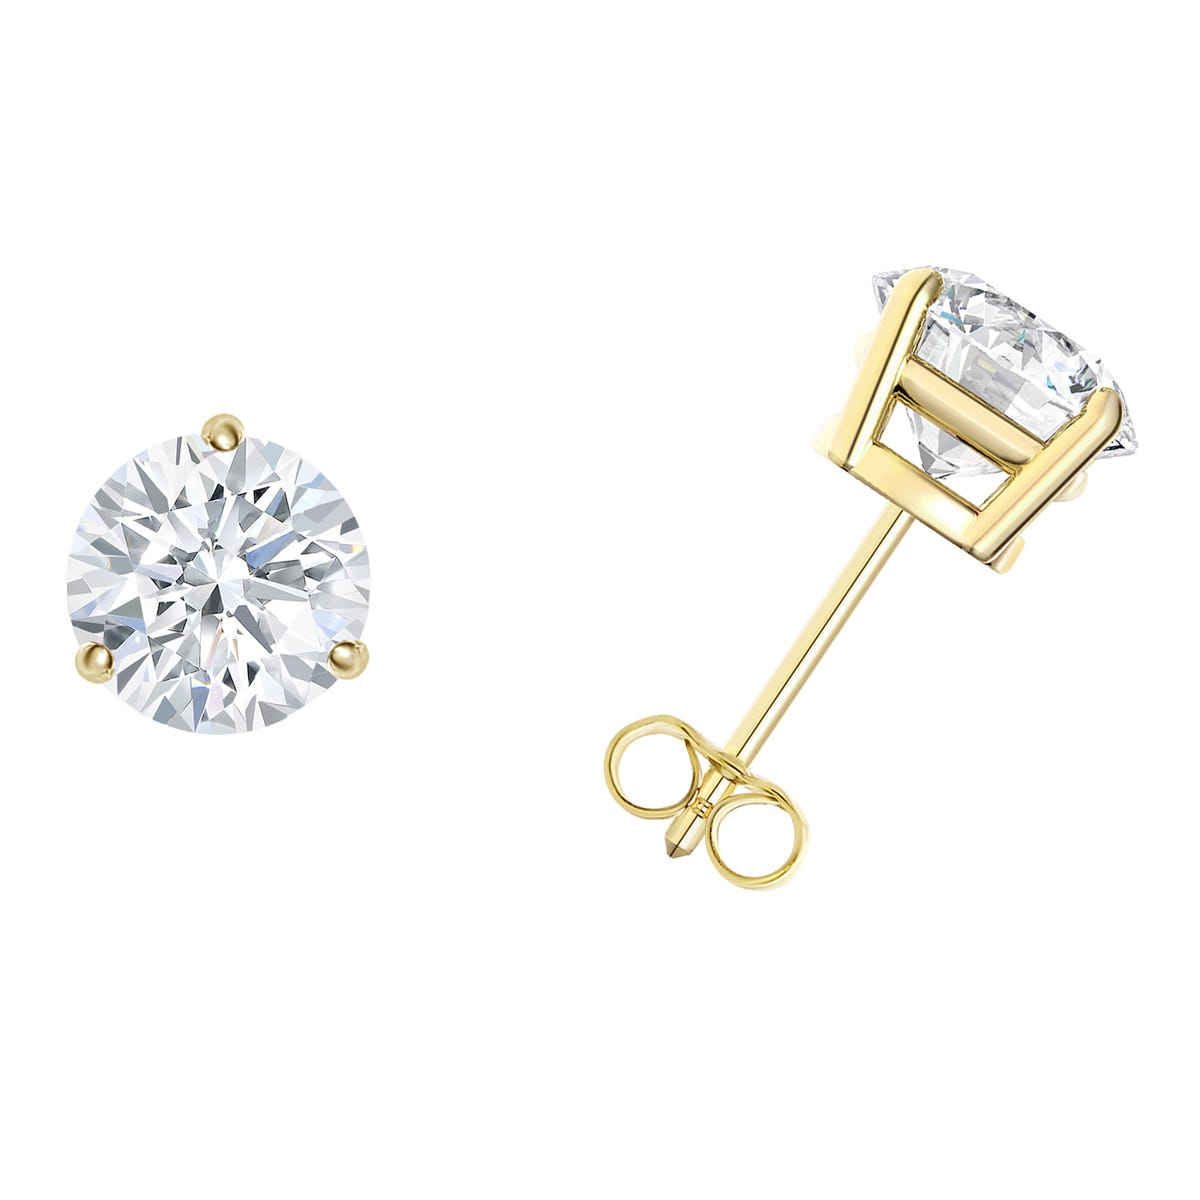 1 CTTW Round Diamond Solitaire Stud Earrings in 18K Yellow Gold 3-Prong IGI Certified SI2